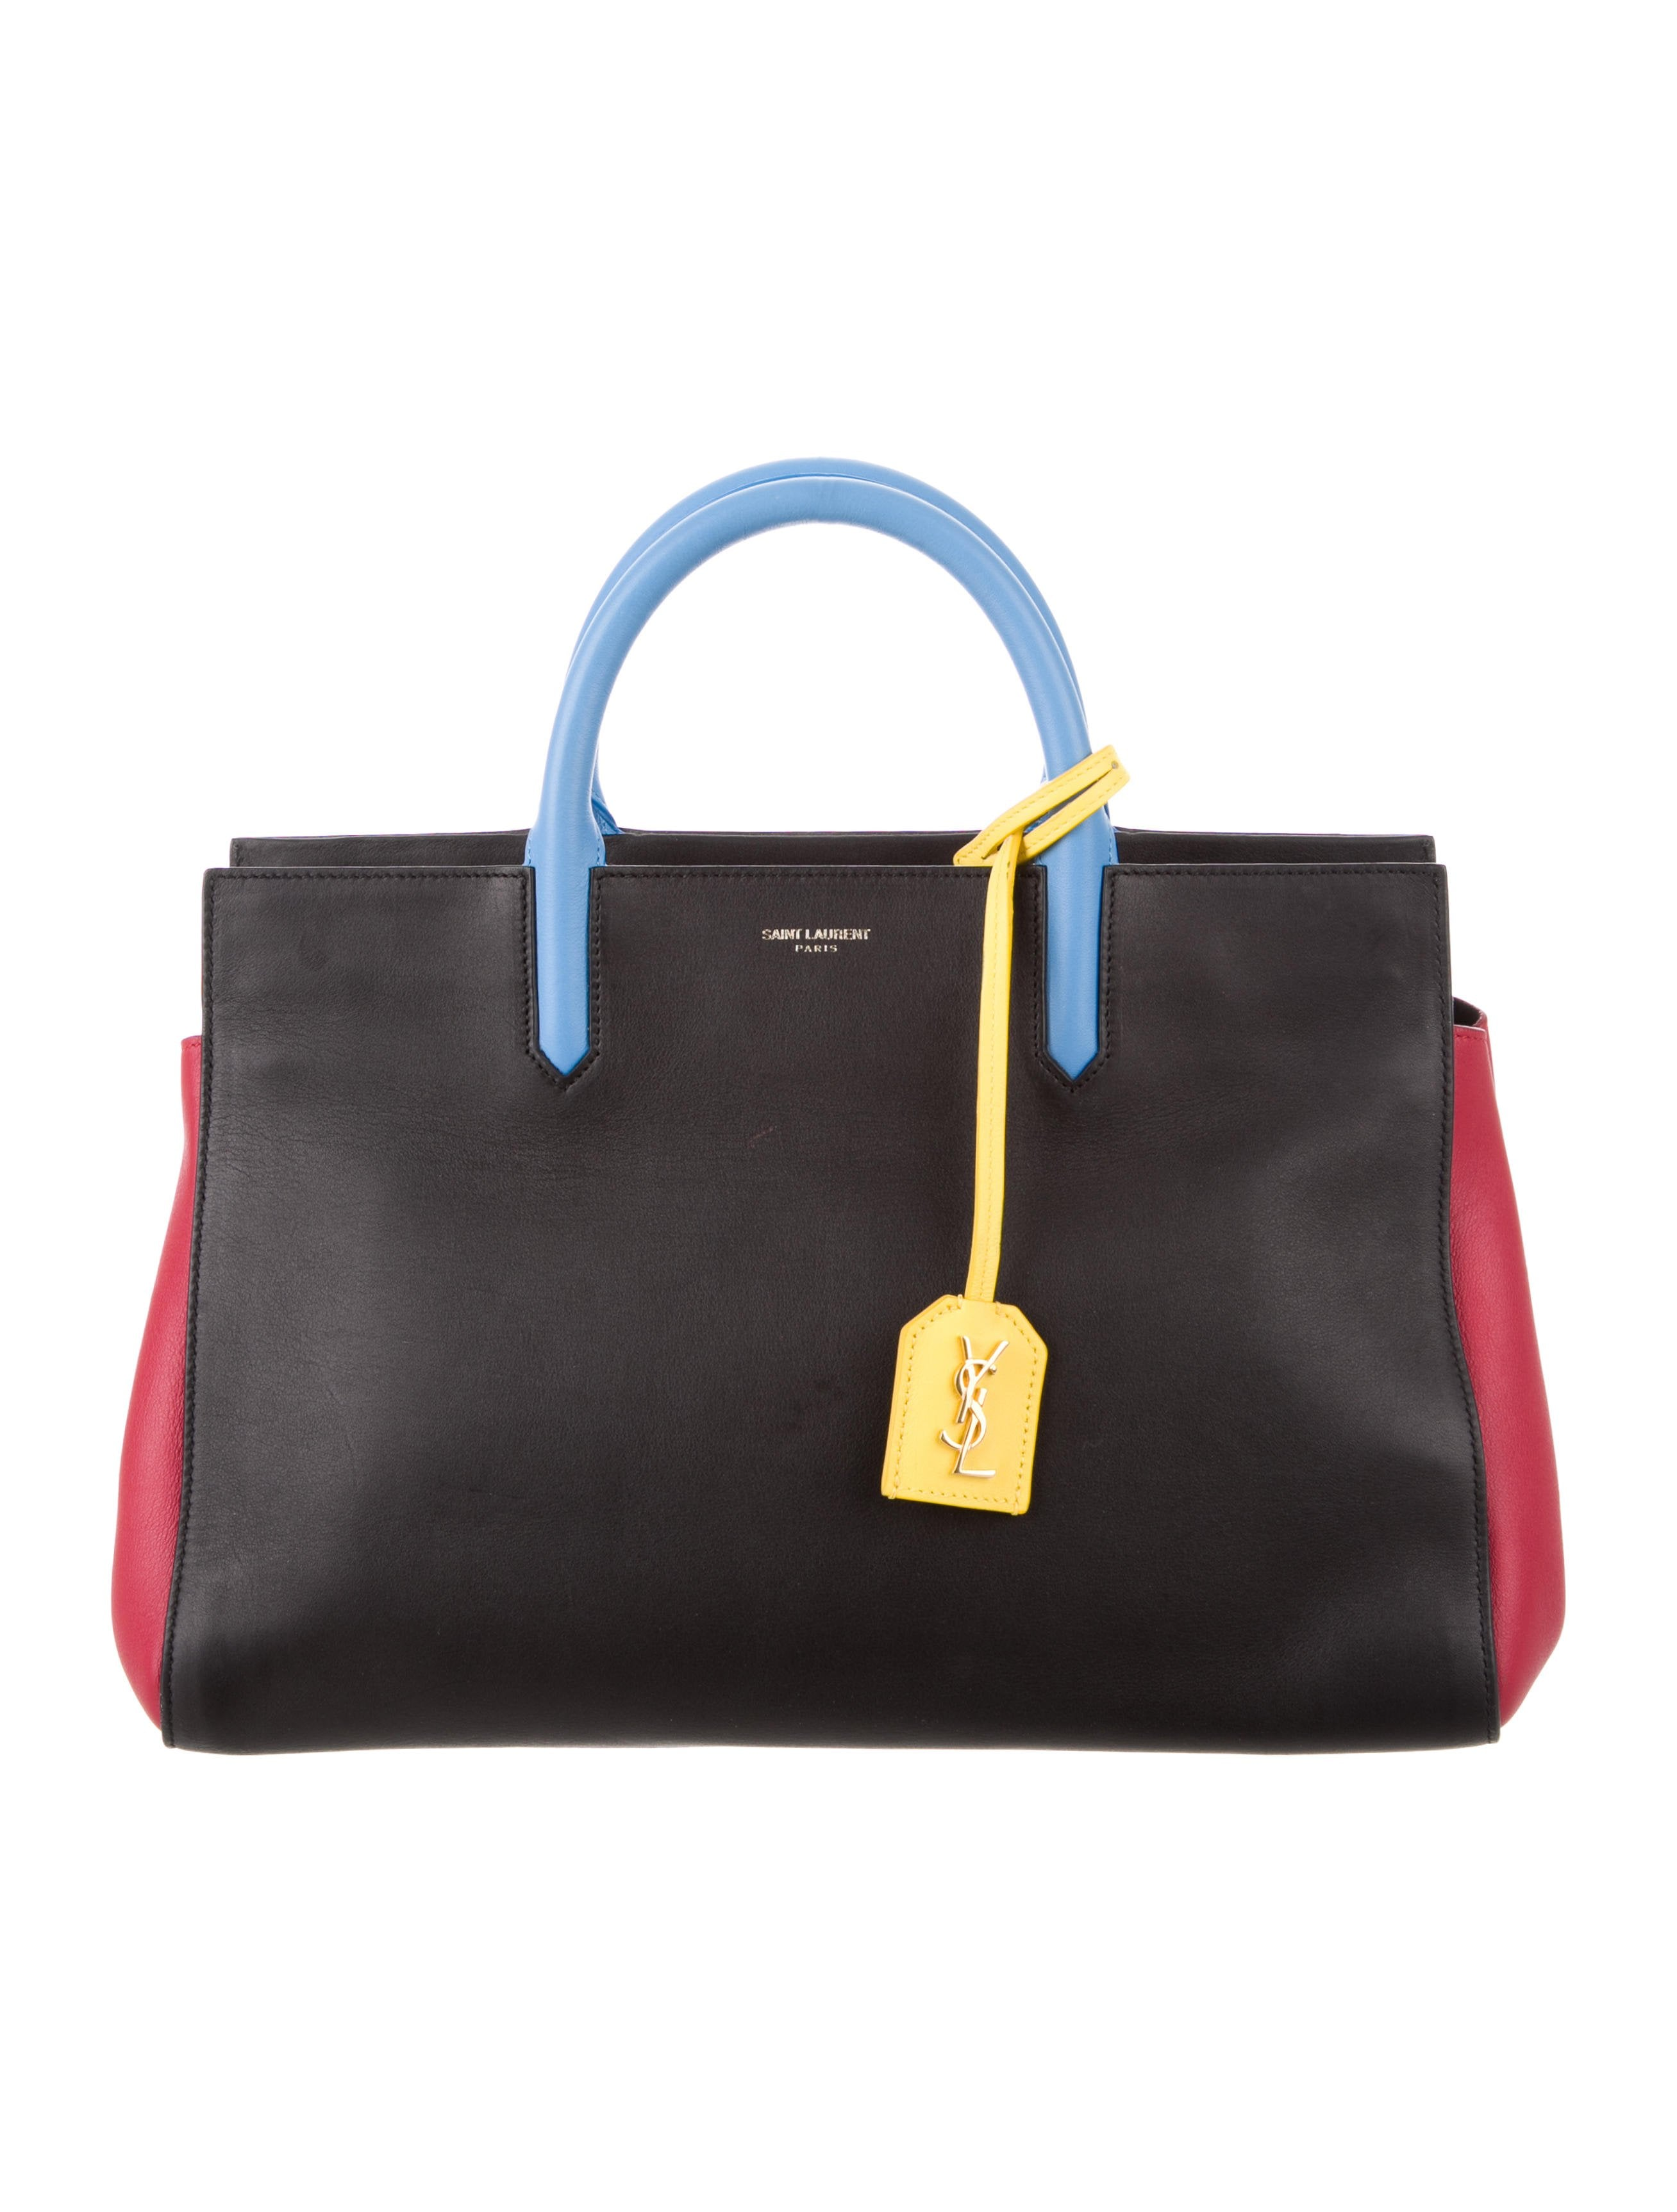 c9b2bac8384d ... this bag got an upgrade in 2016 and while still remaining a familiar  structured and minimalist look